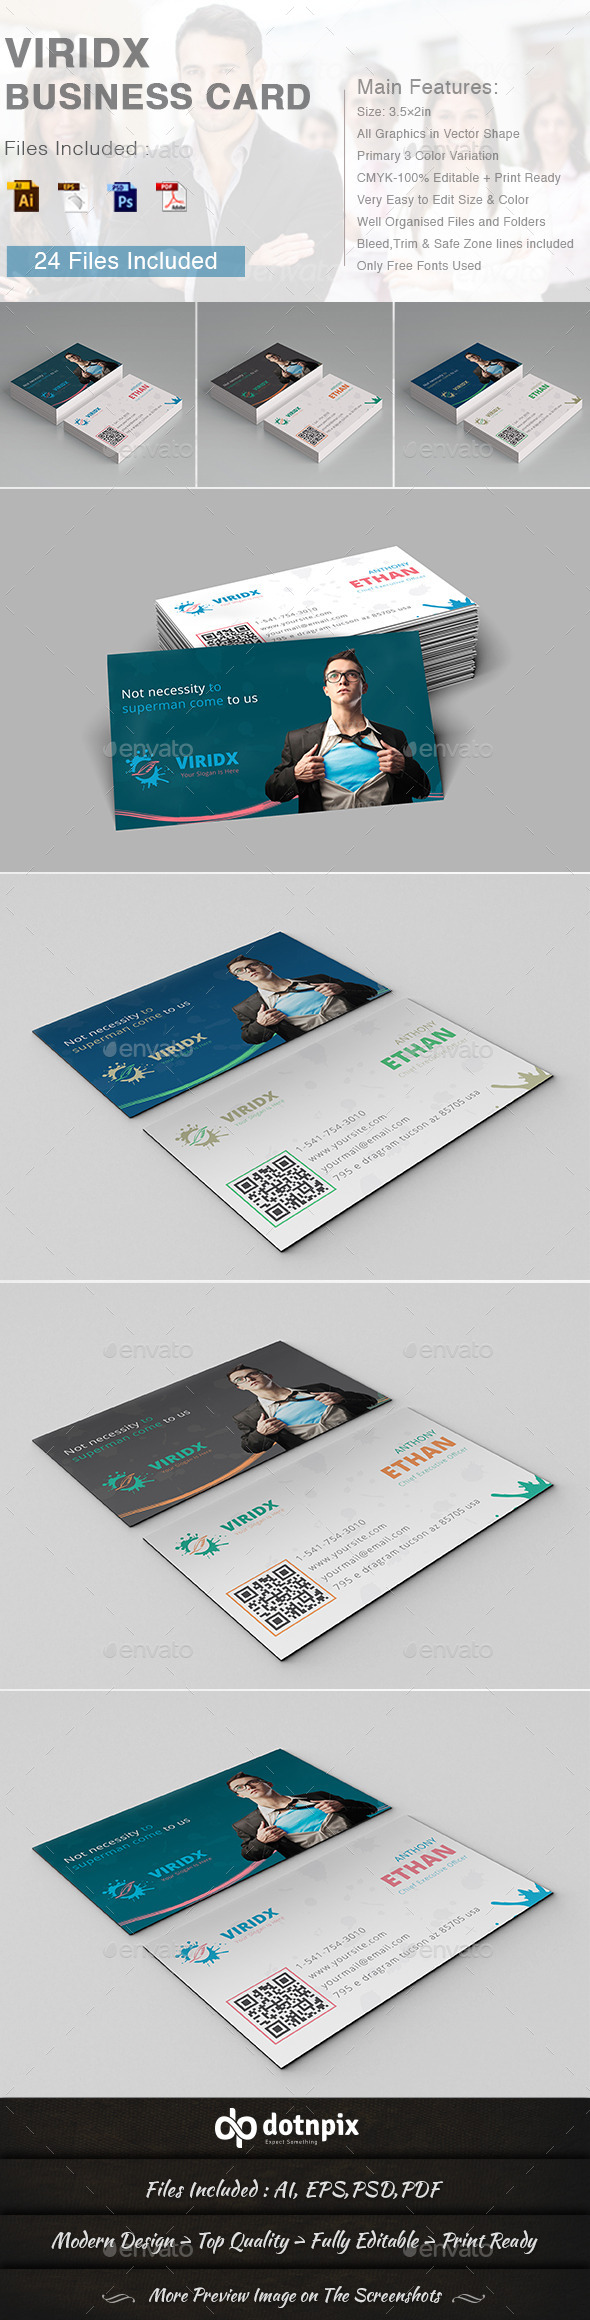 Viridx Business Card